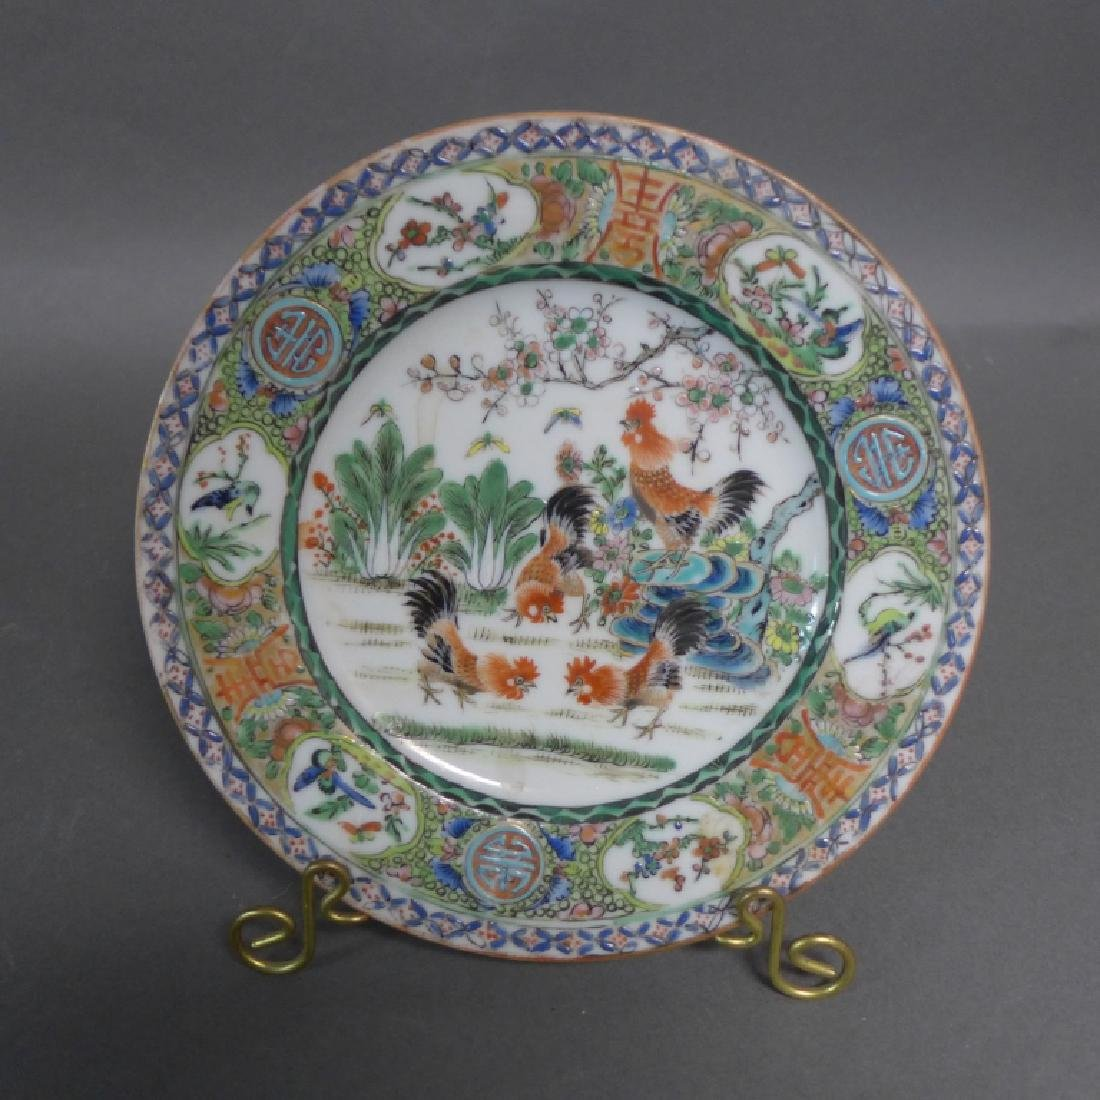 Antique Chinese Export Porcelain Rooster Plate